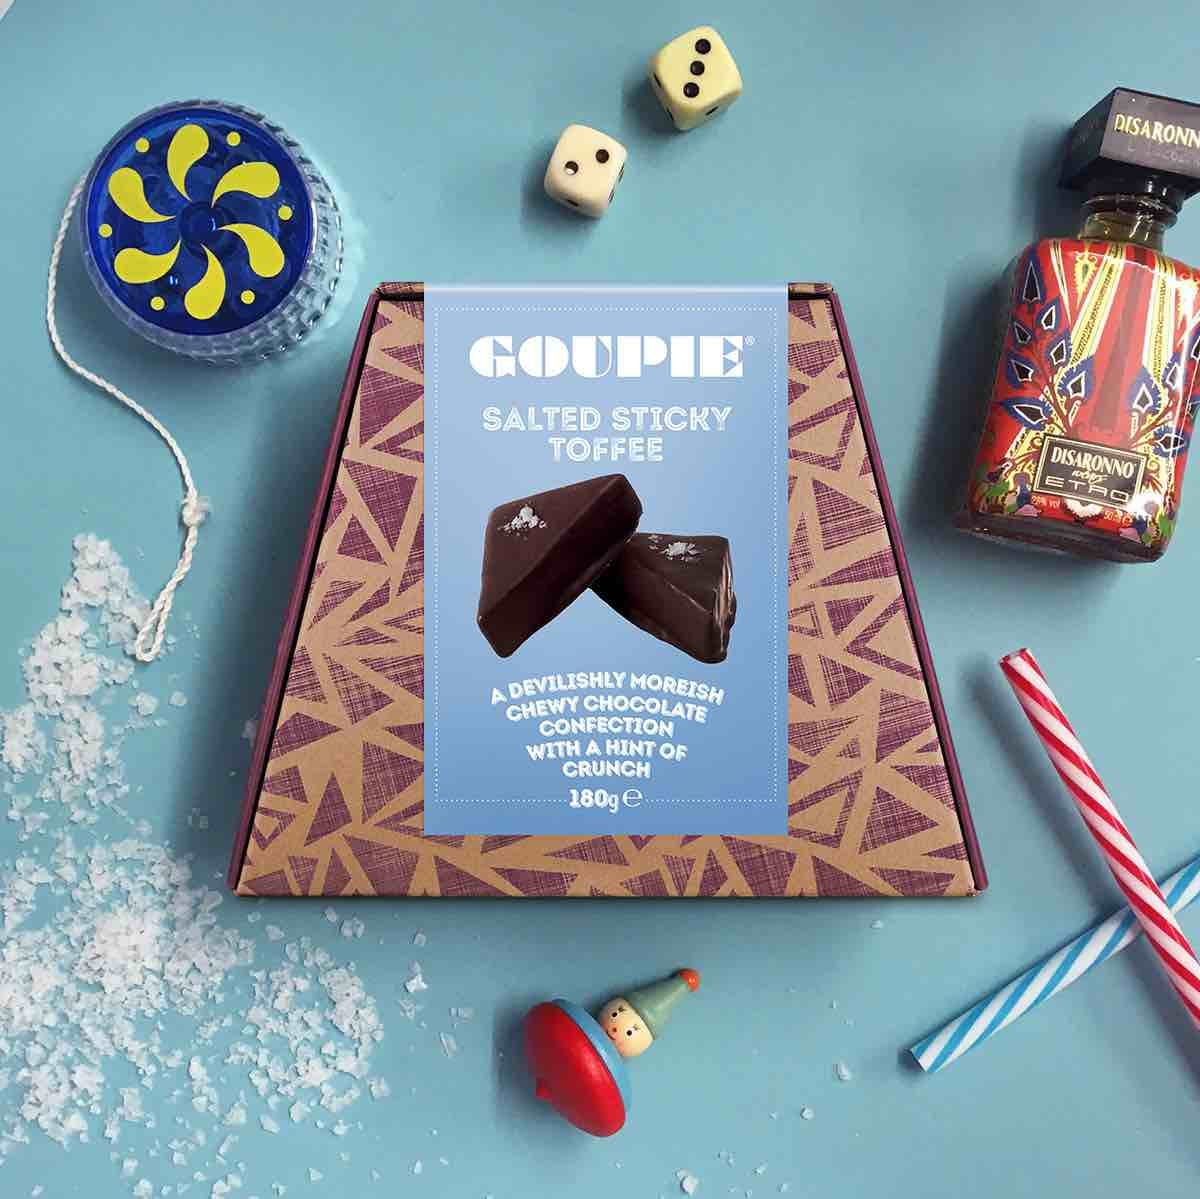 Box of Goupie salted sticky toffee chocolate.